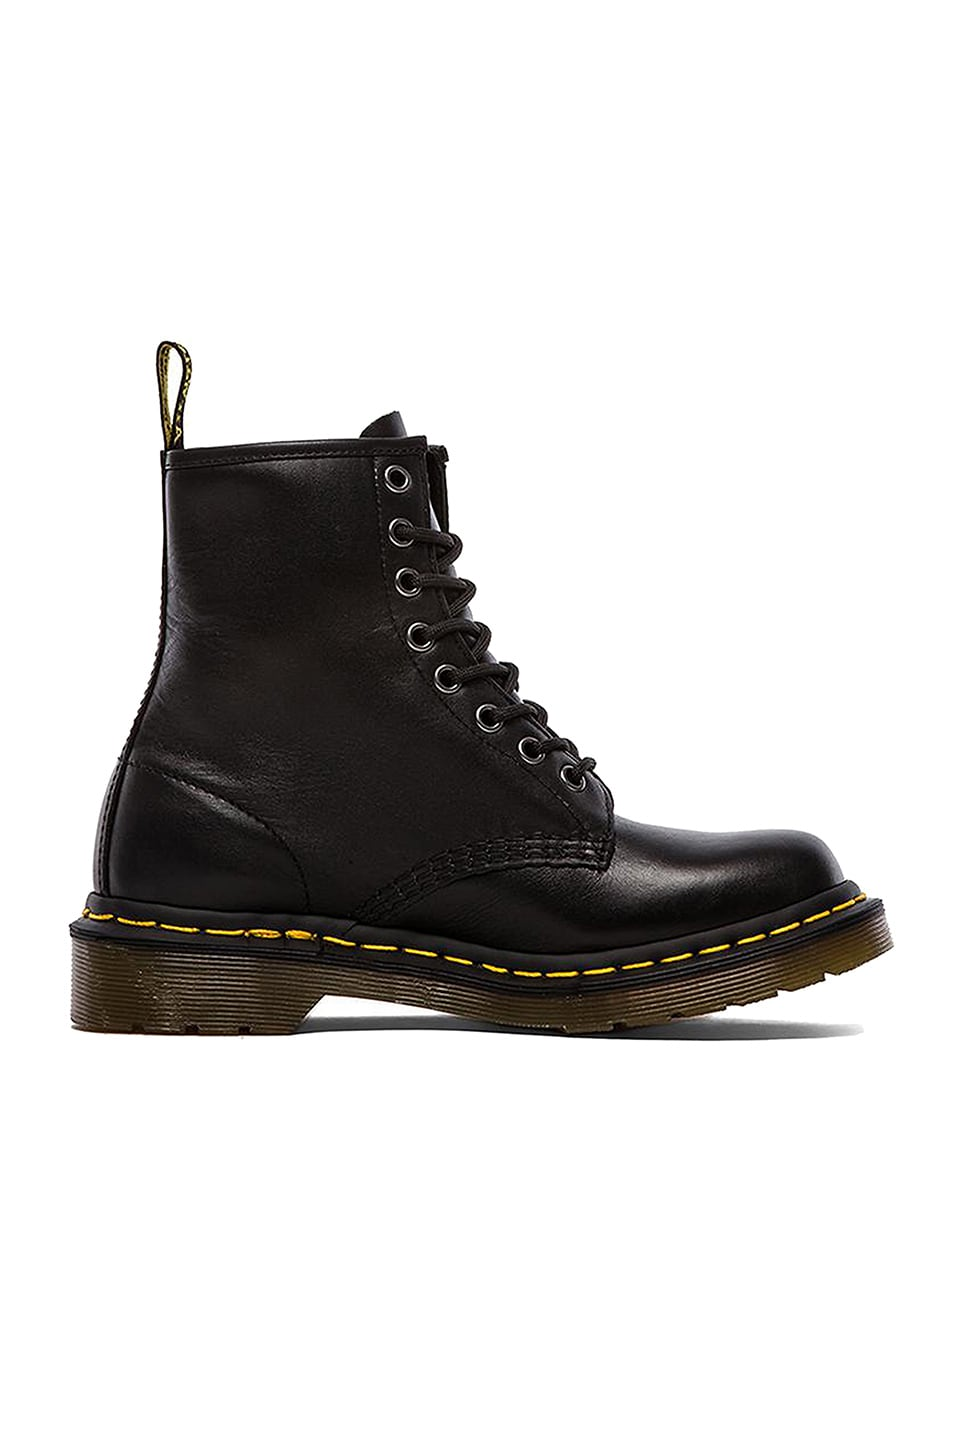 Dr. Martens BOTA ICONIC 8 EYE